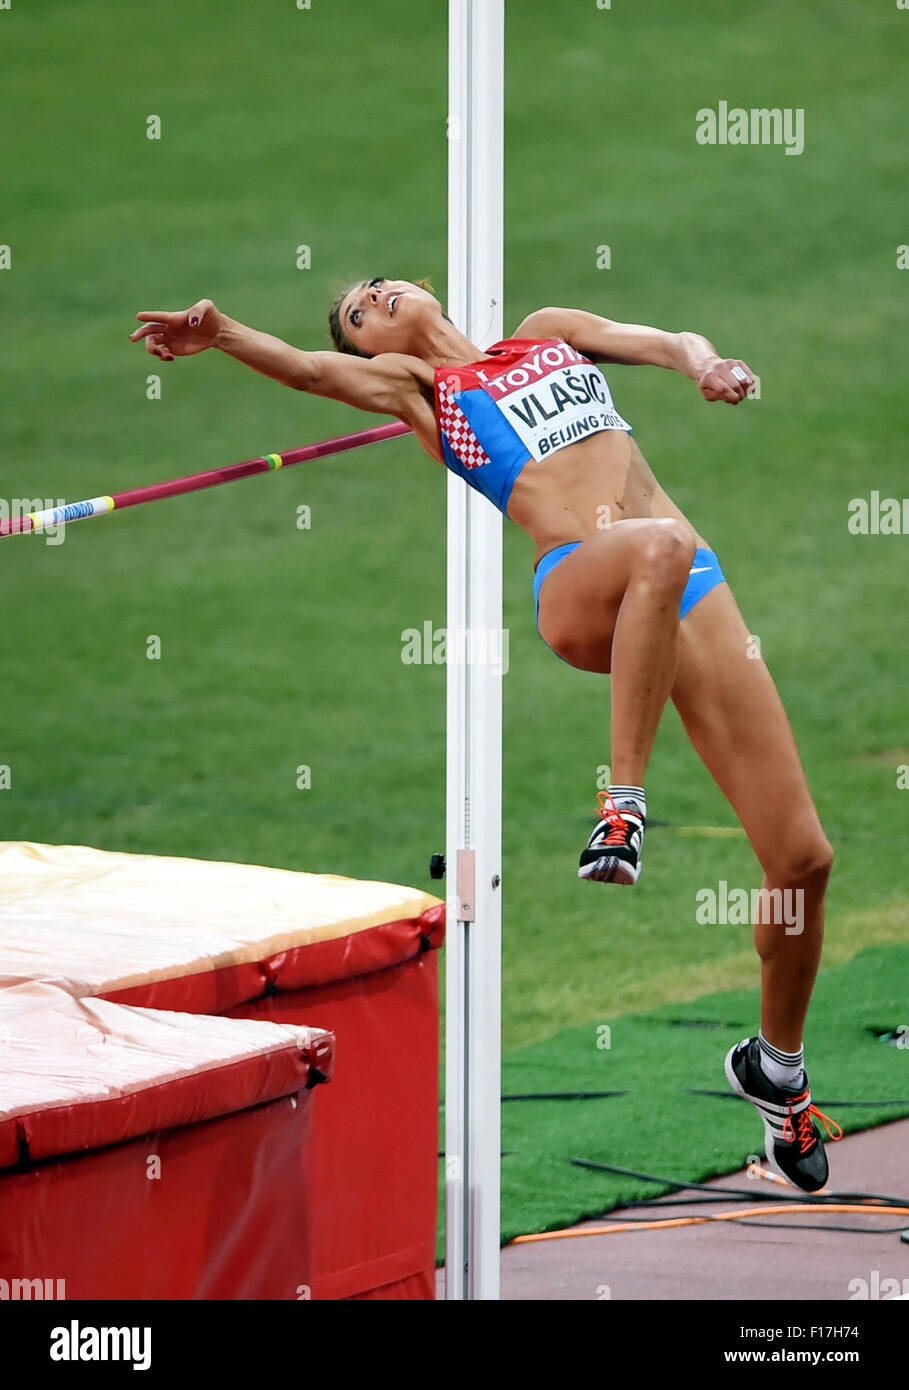 Beijing, China. 29th Aug, 2015. Blanka Vlasic of Croatia competes during the women's high jump final at the - Stock Image